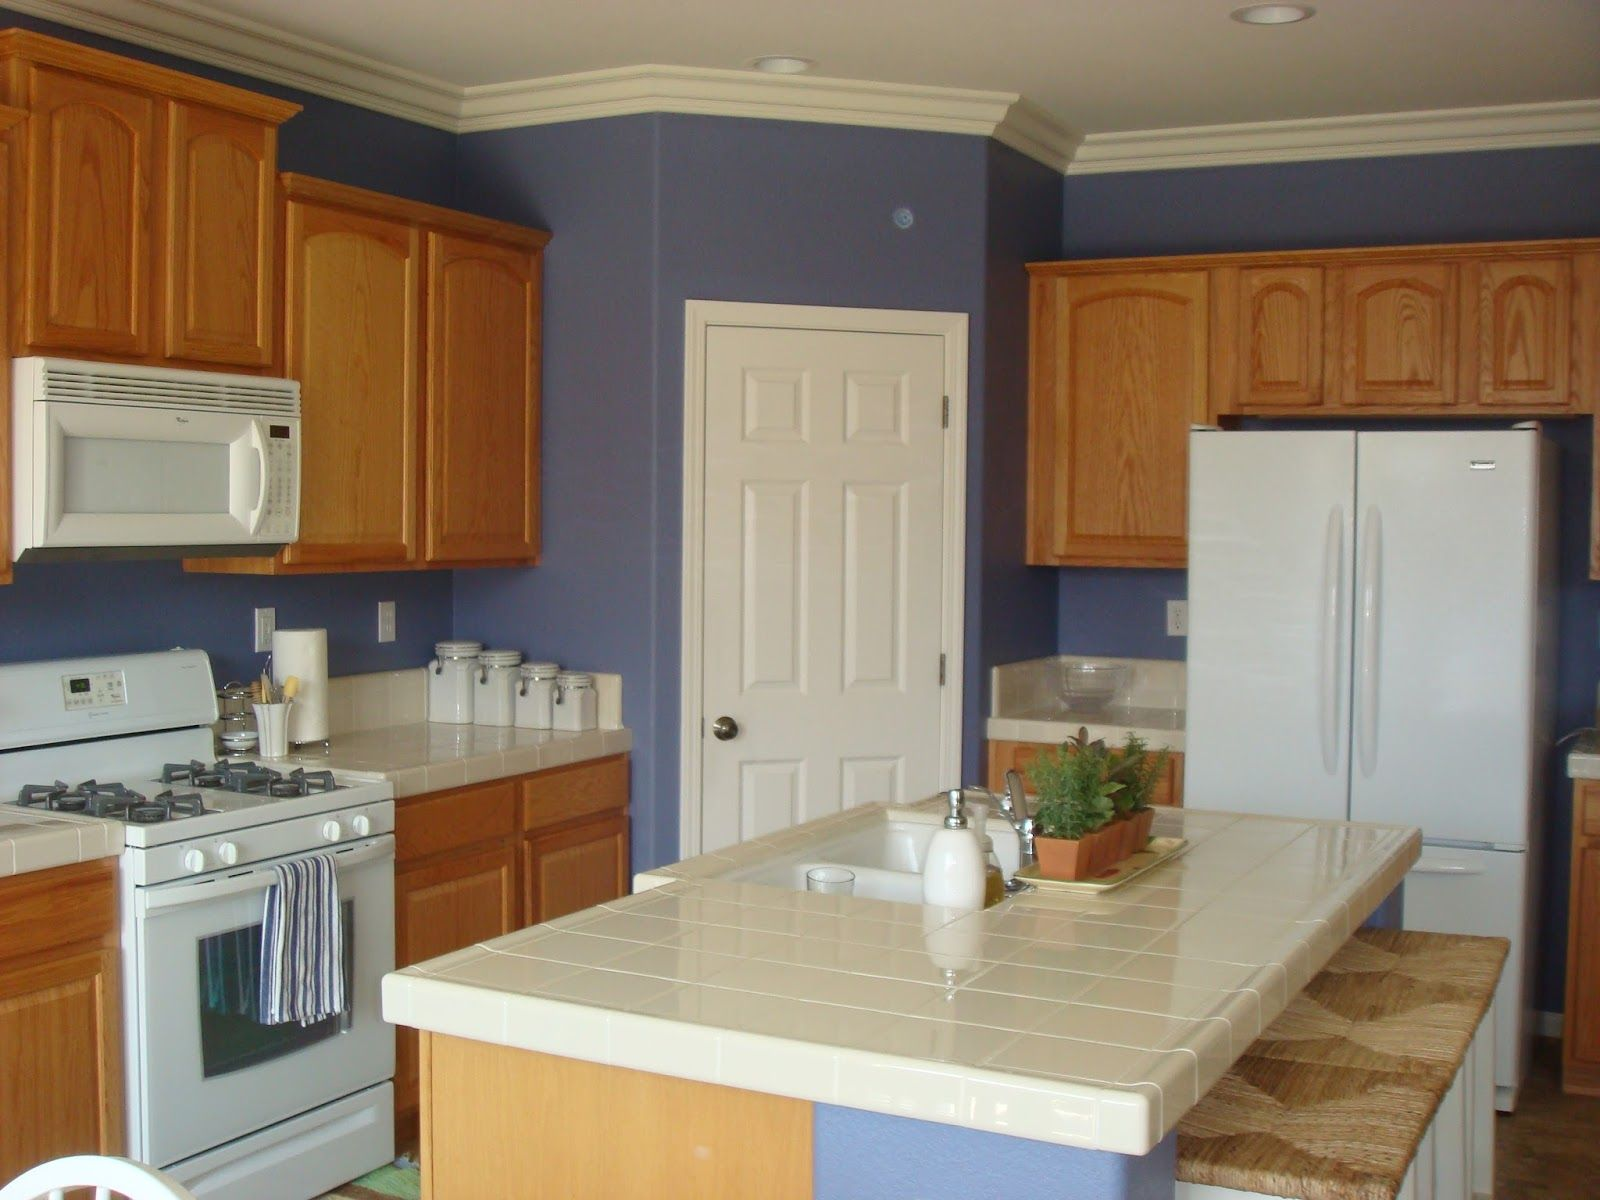 Pleasurable Blue Colors For Kitchen Walls With Wooden ...